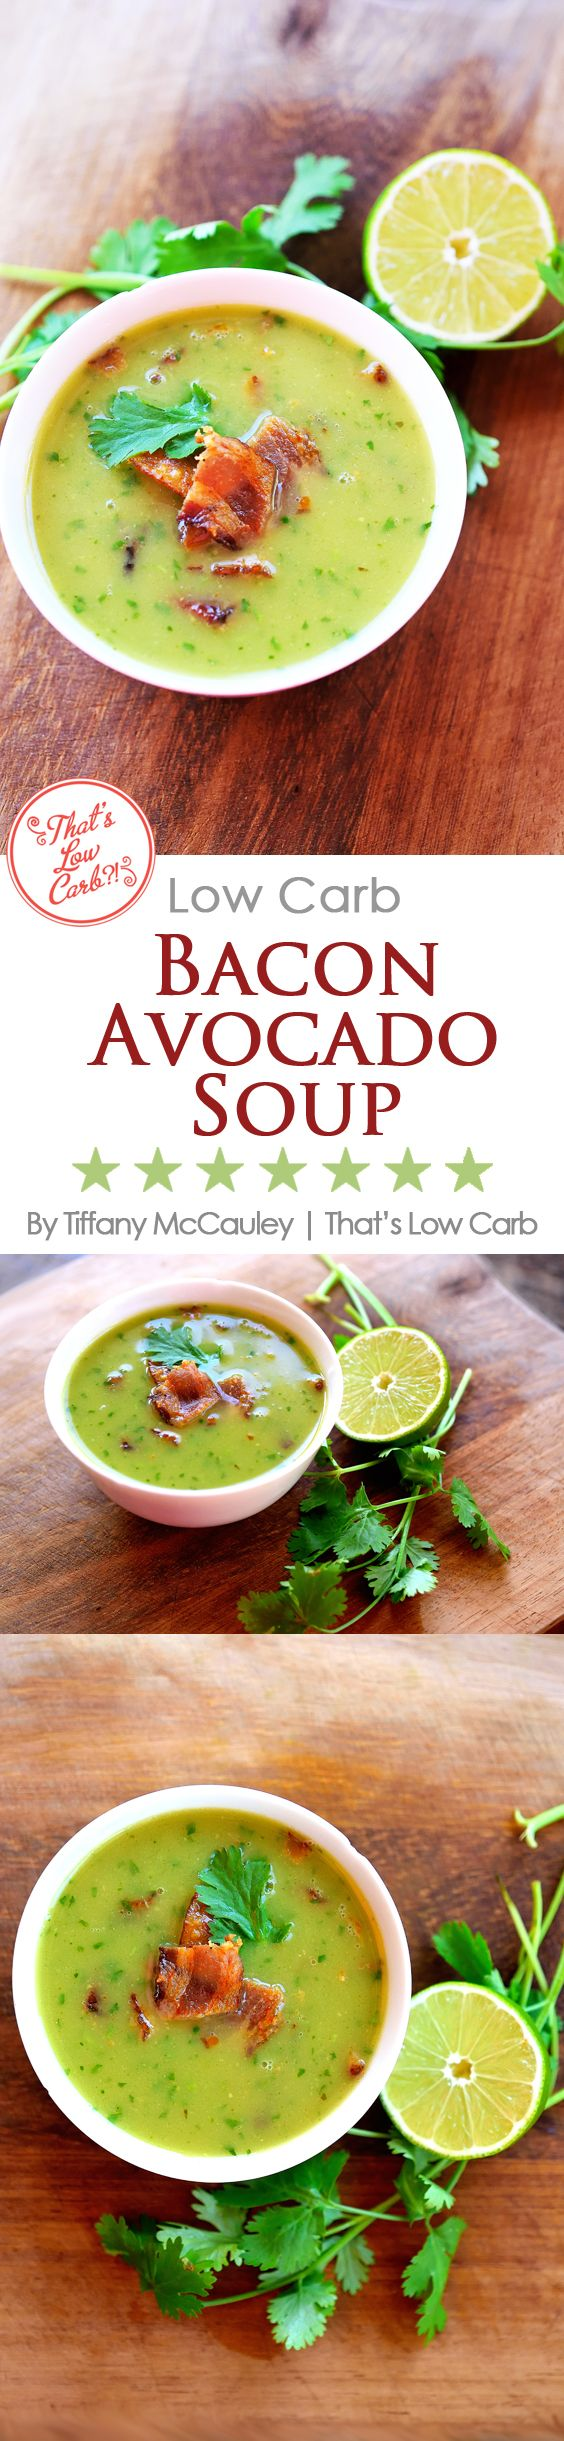 25+ best ideas about Avocado soup on Pinterest | Chicken ...